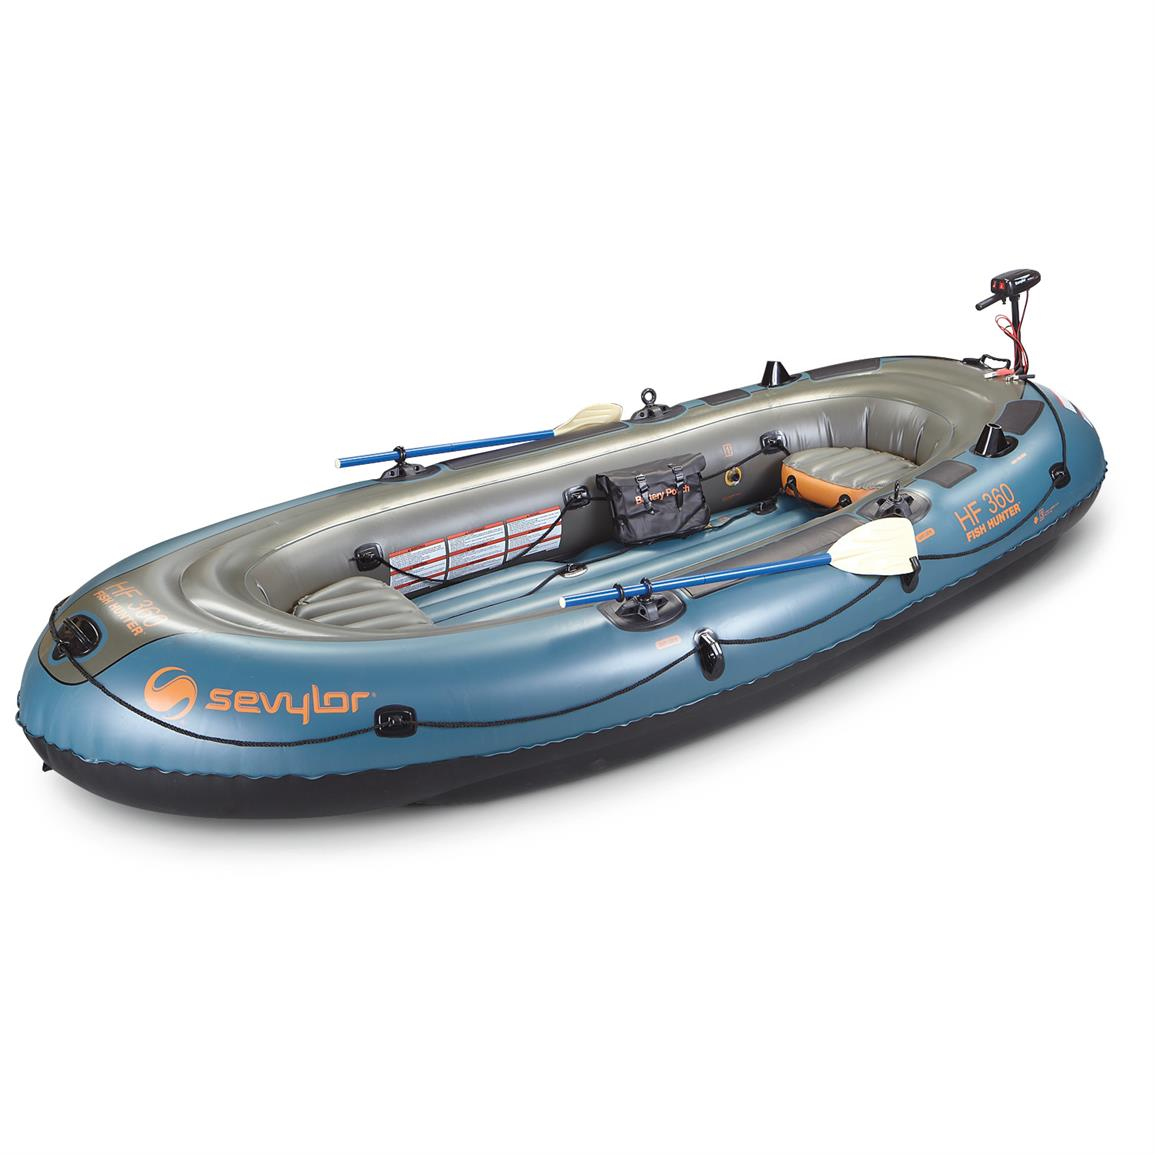 Sevylor Fish Hunter Inflatable Boat and Motor Kit